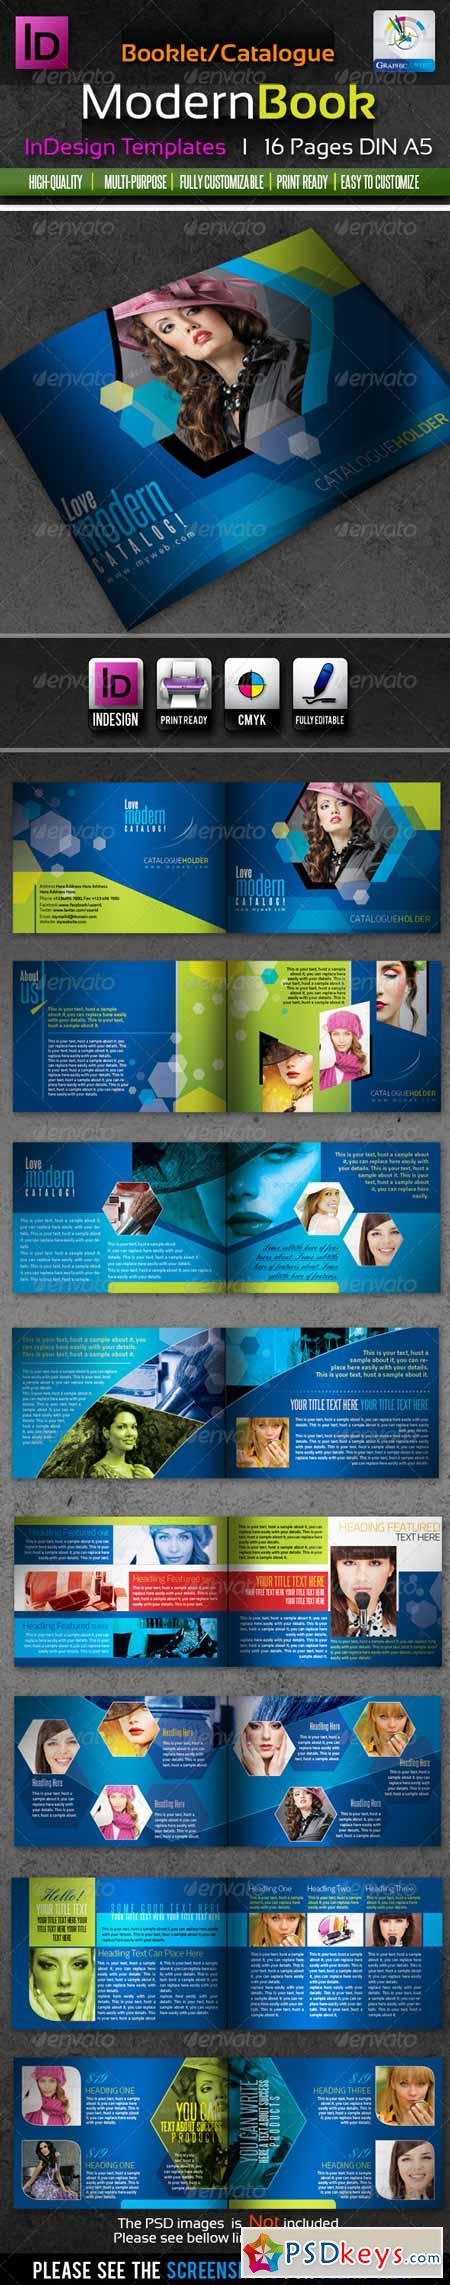 Corporate InDesign Modern Booklet Catalog 16pages 1866935 » Free ...